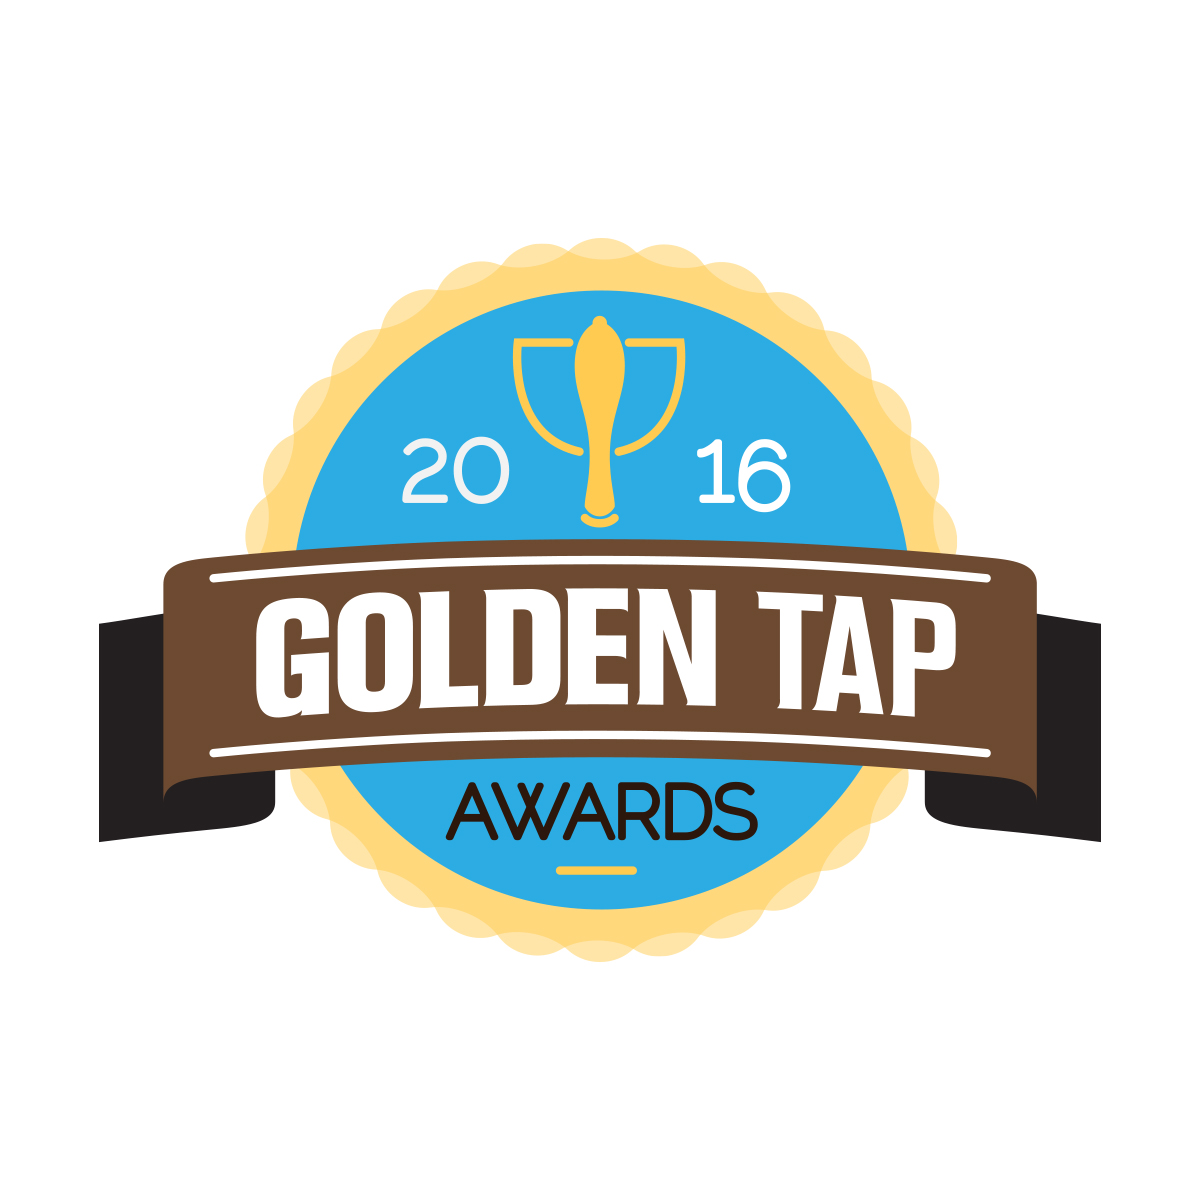 Golden Tap Talk with Ben Johnson and David Ort